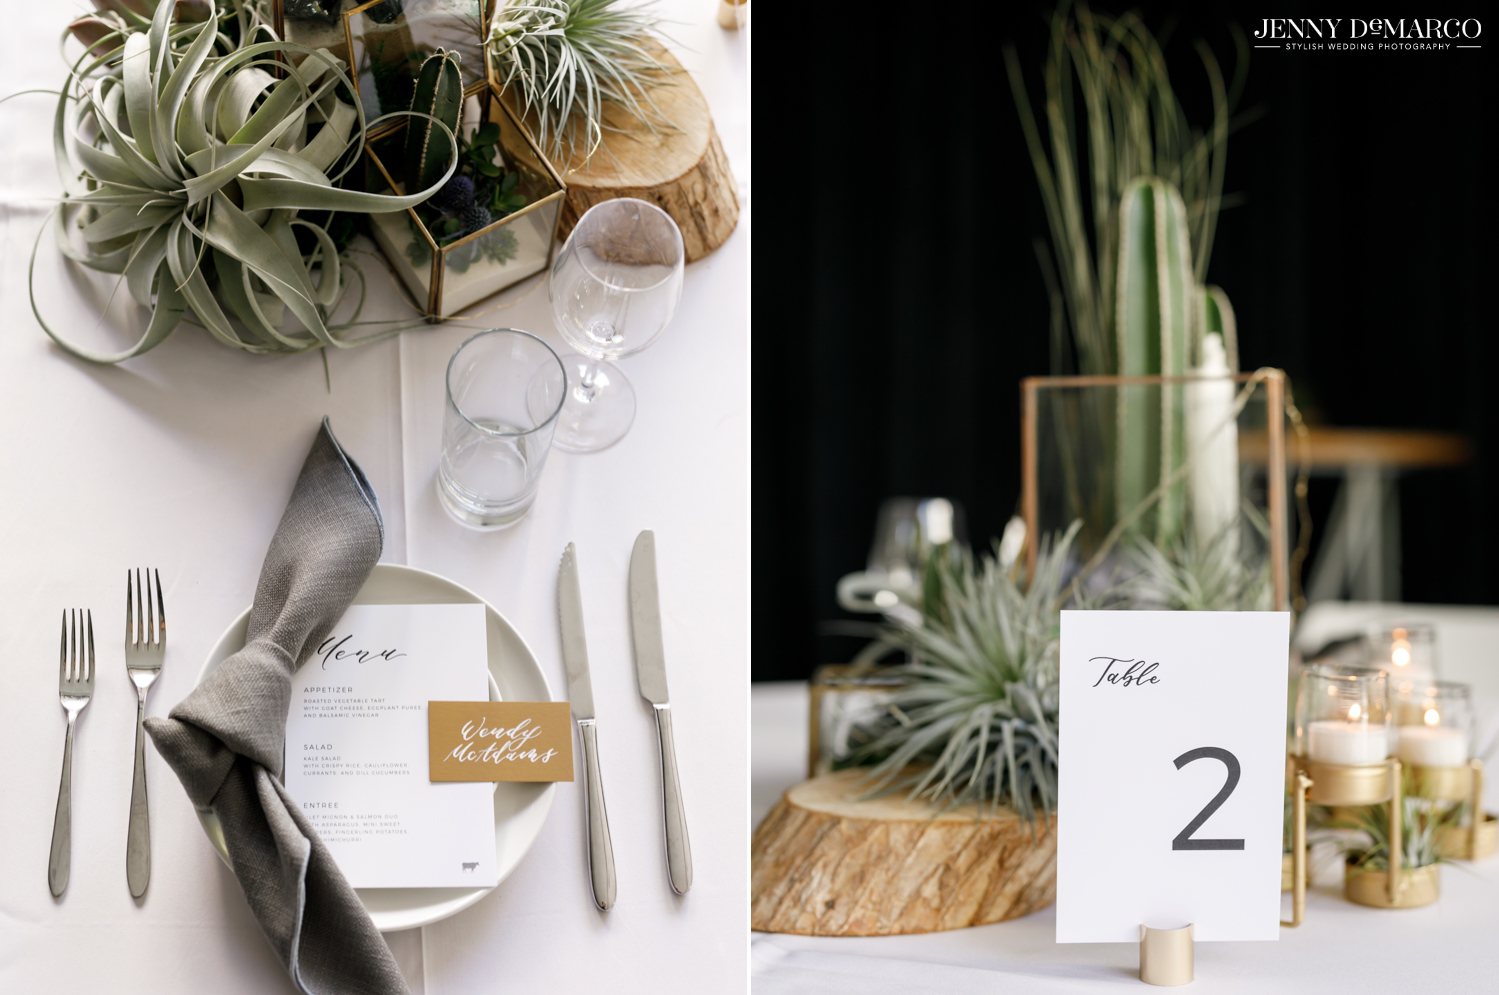 Left: Reception tableware and decorations; Right: Reception table decorations